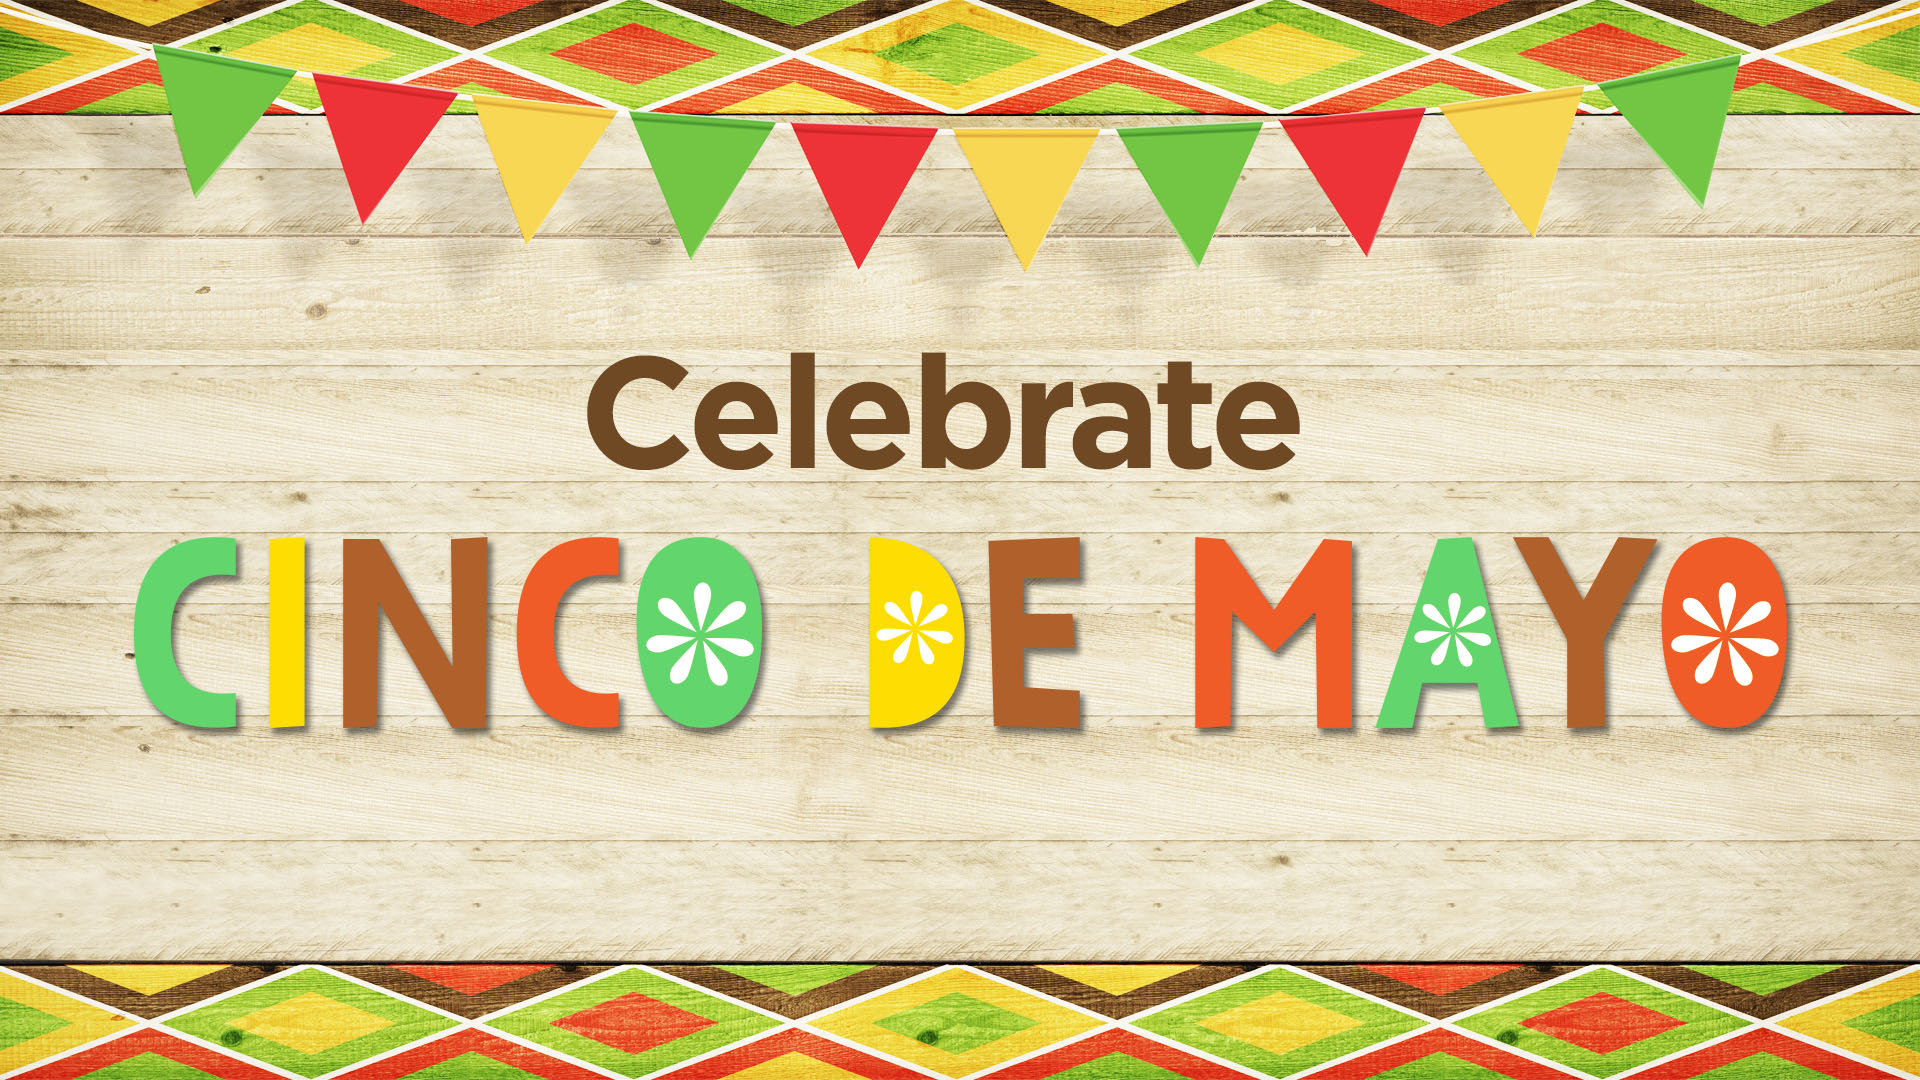 Pay tribute to Mexican culture & history with exclusive Cinco de Mayo music specials